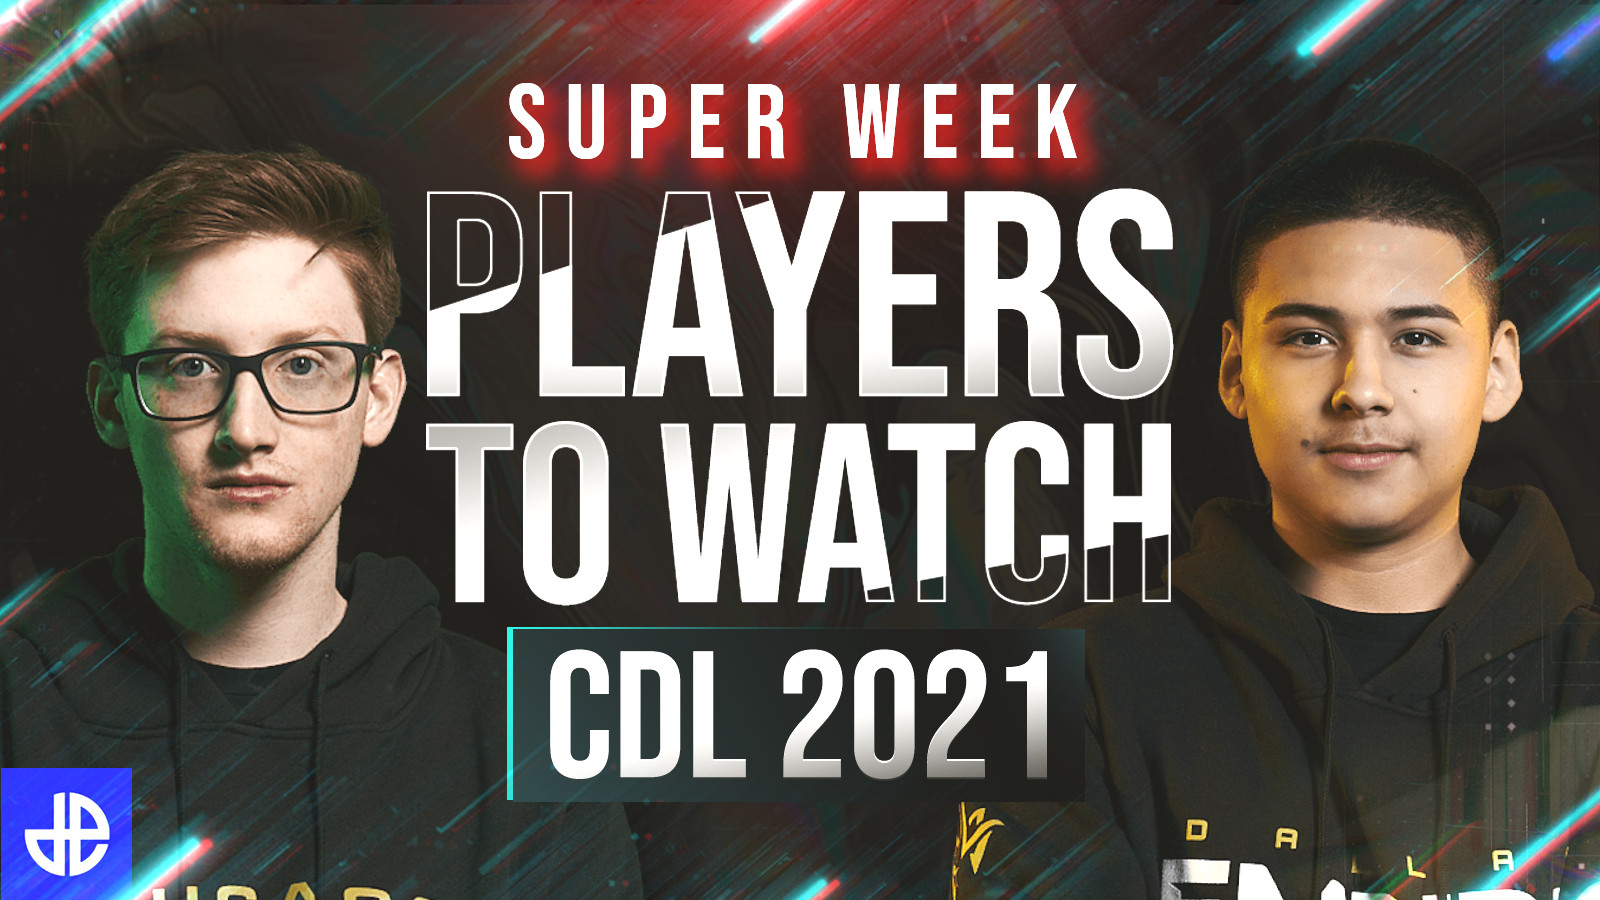 cdl players to watch super week